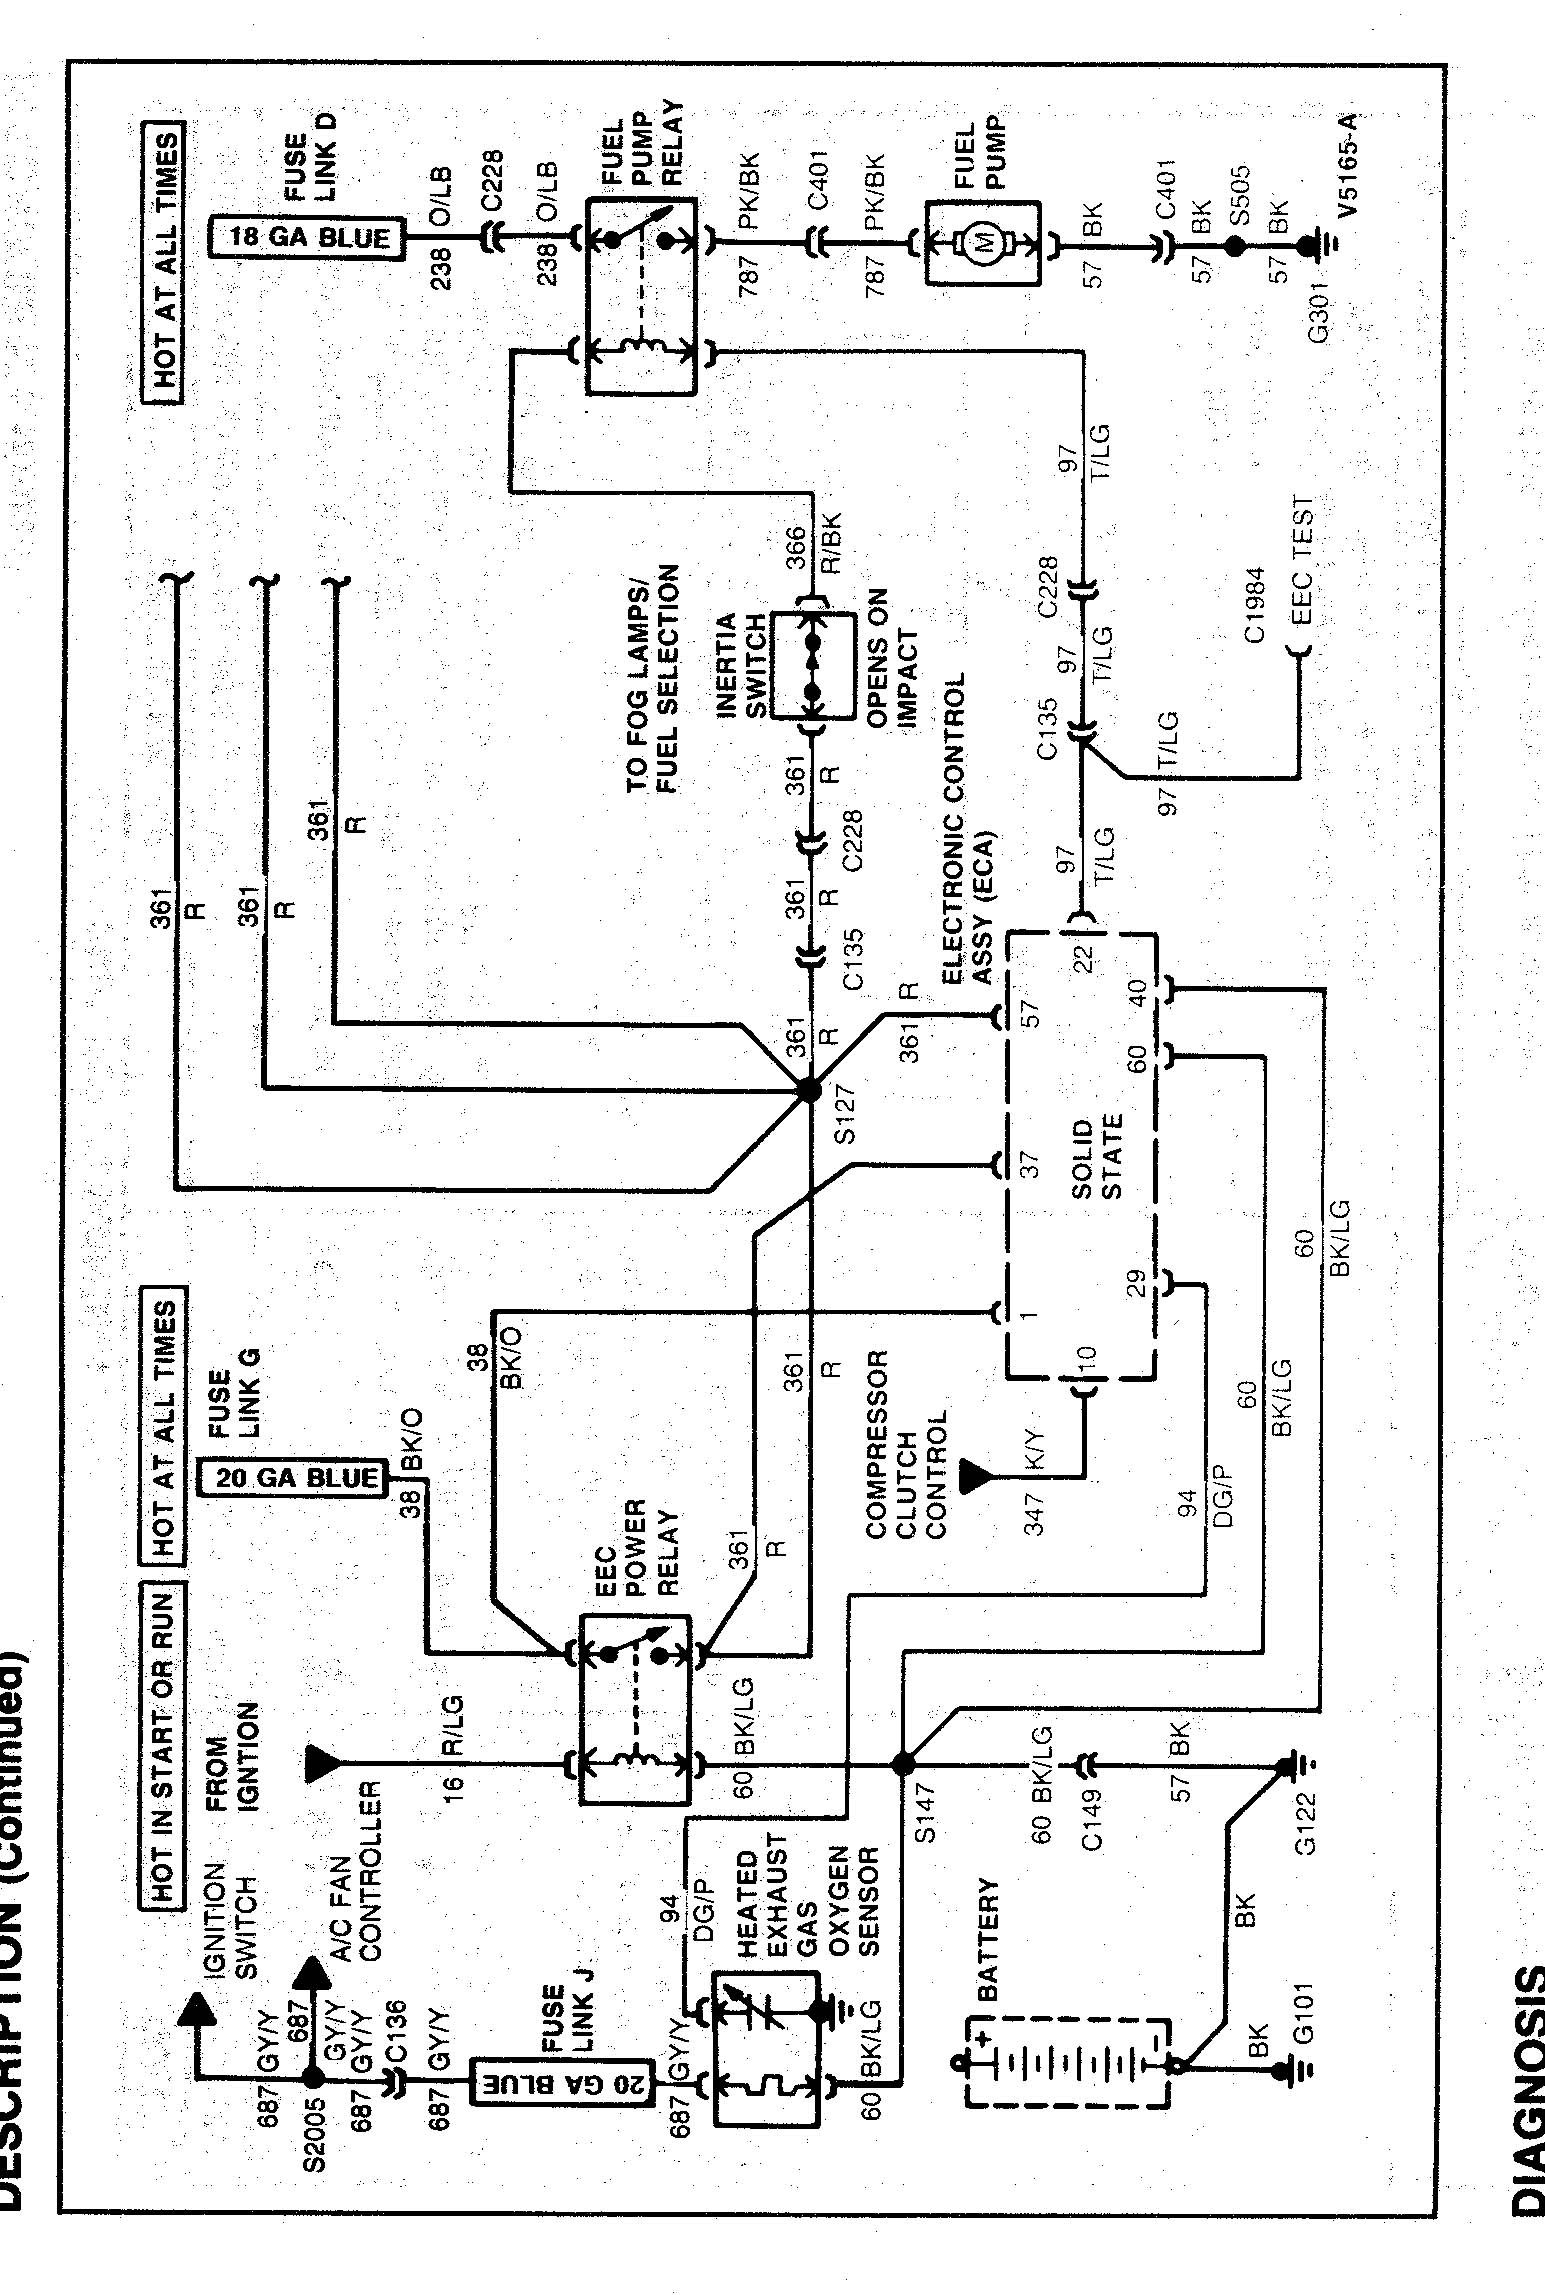 hight resolution of 1998 mustang fuel pump routenew mx tl mustang fuel pump wiring diagram additionally toyota 4runner fuel